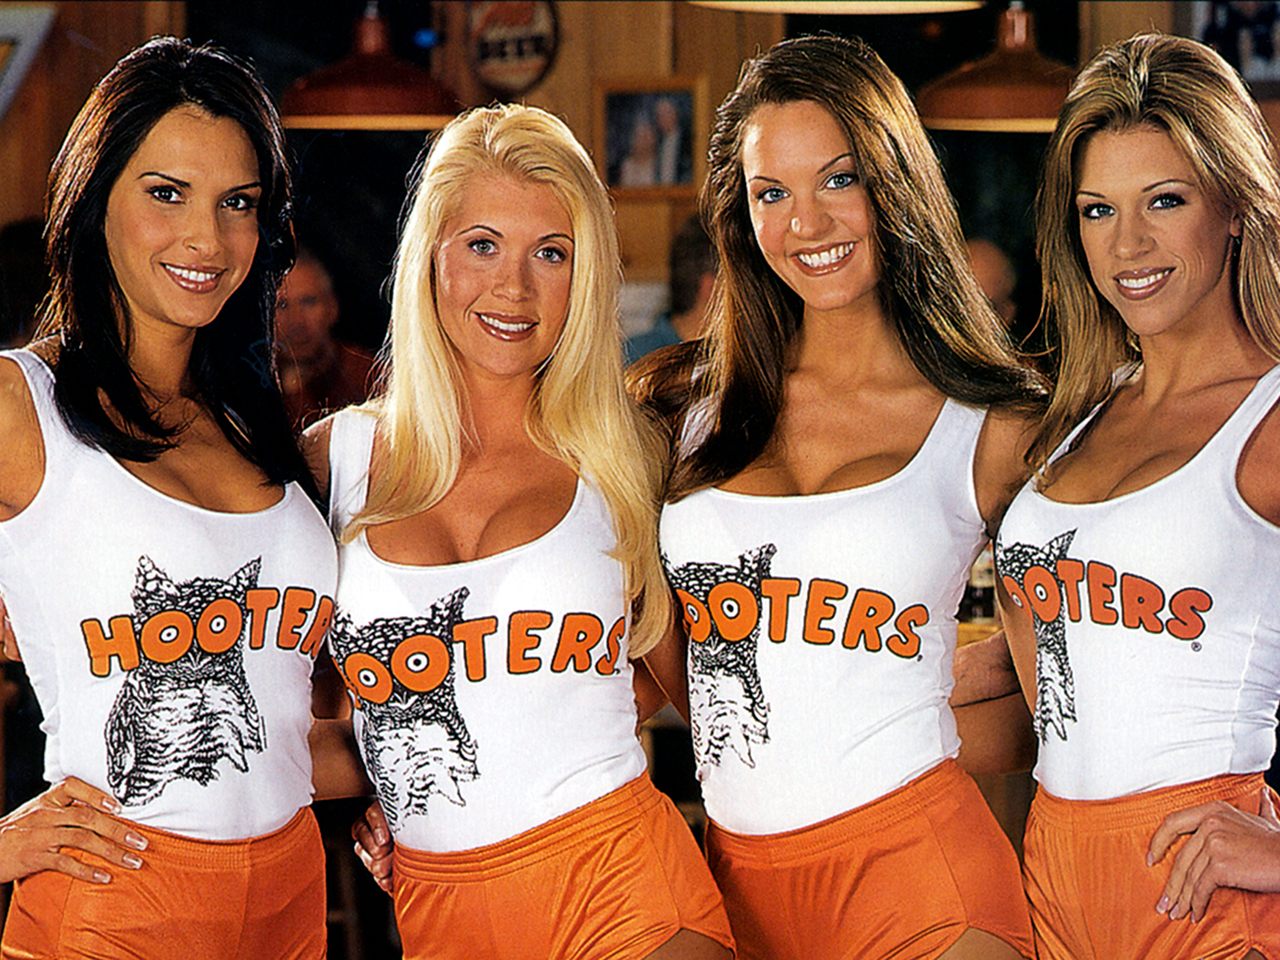 Hooters 30 birthday